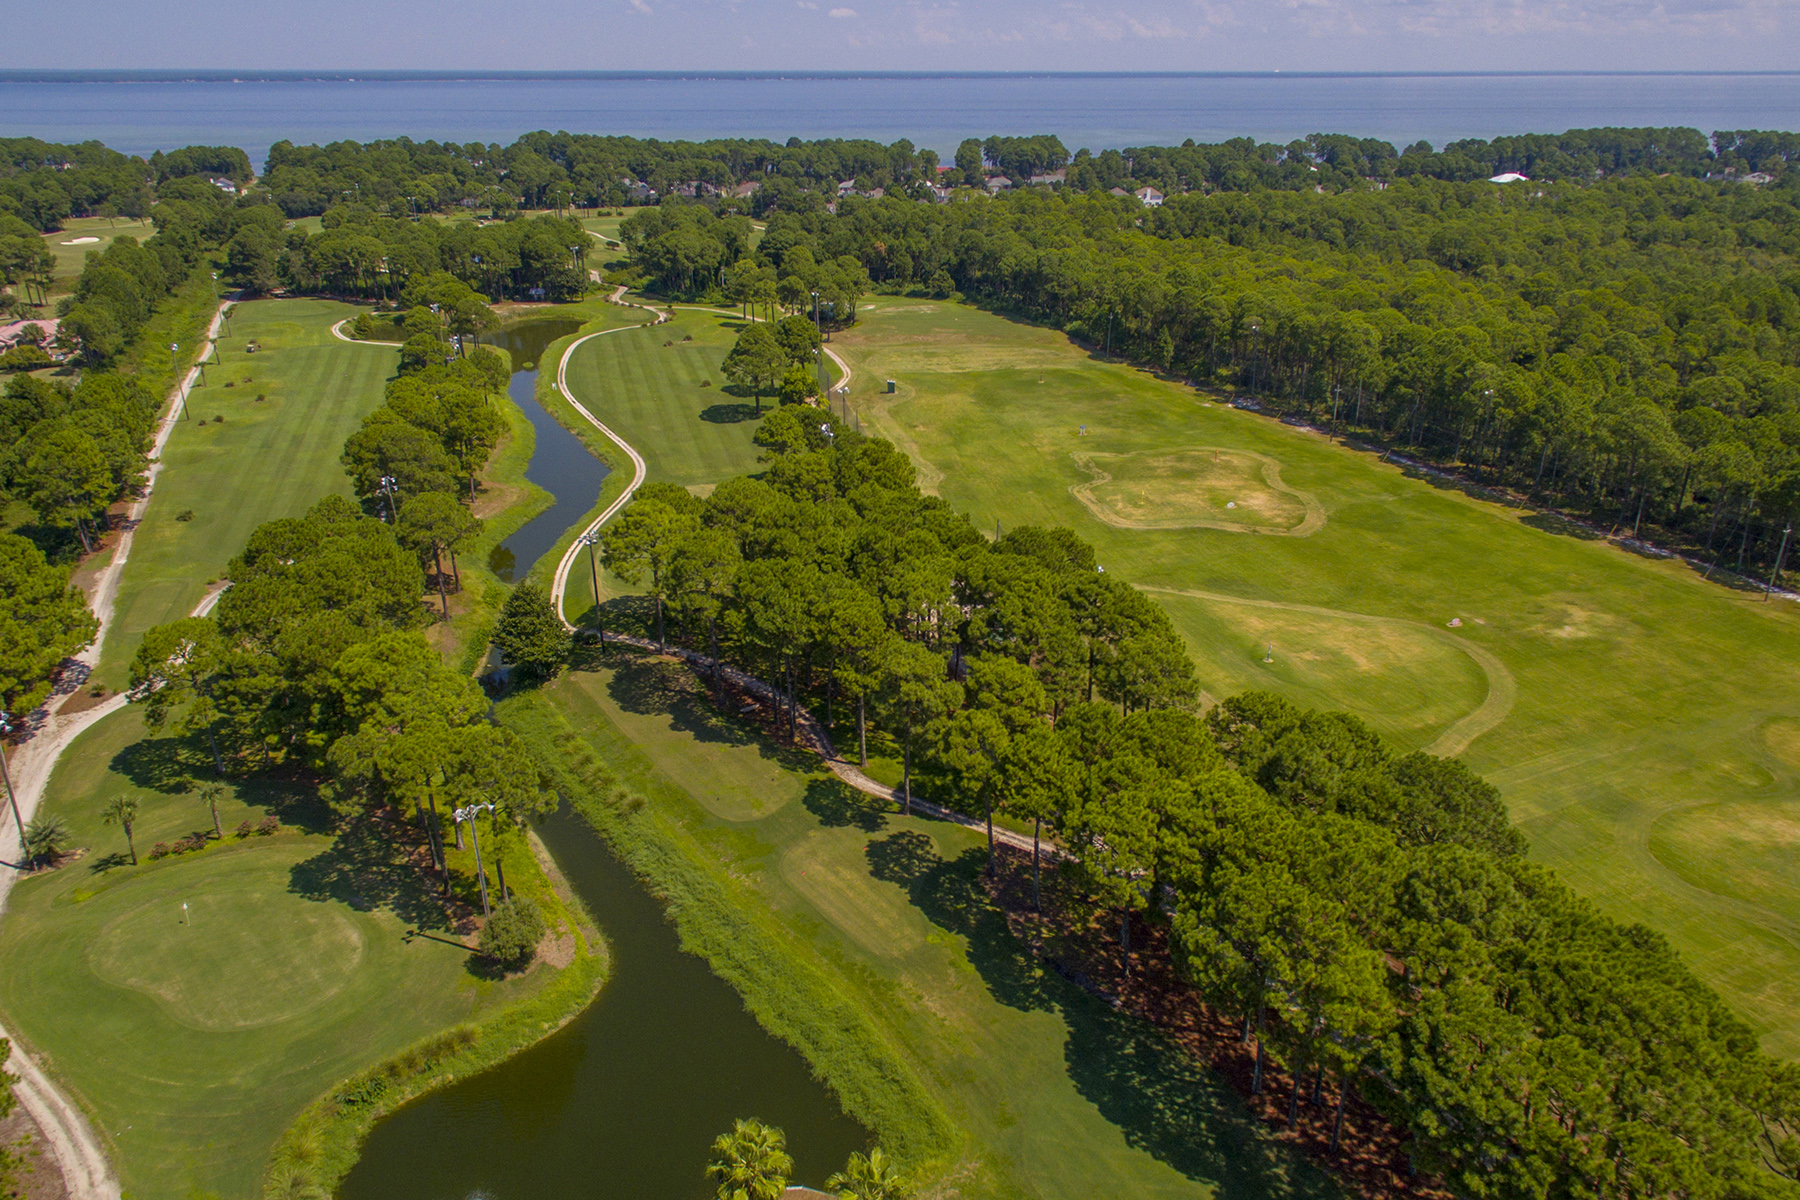 Terrain pour l Vente à RARE GOLF PROPERTY IS LAST OF ITS KIND 12958 W US Highway 98 Miramar Beach, Florida, 32550 États-Unis